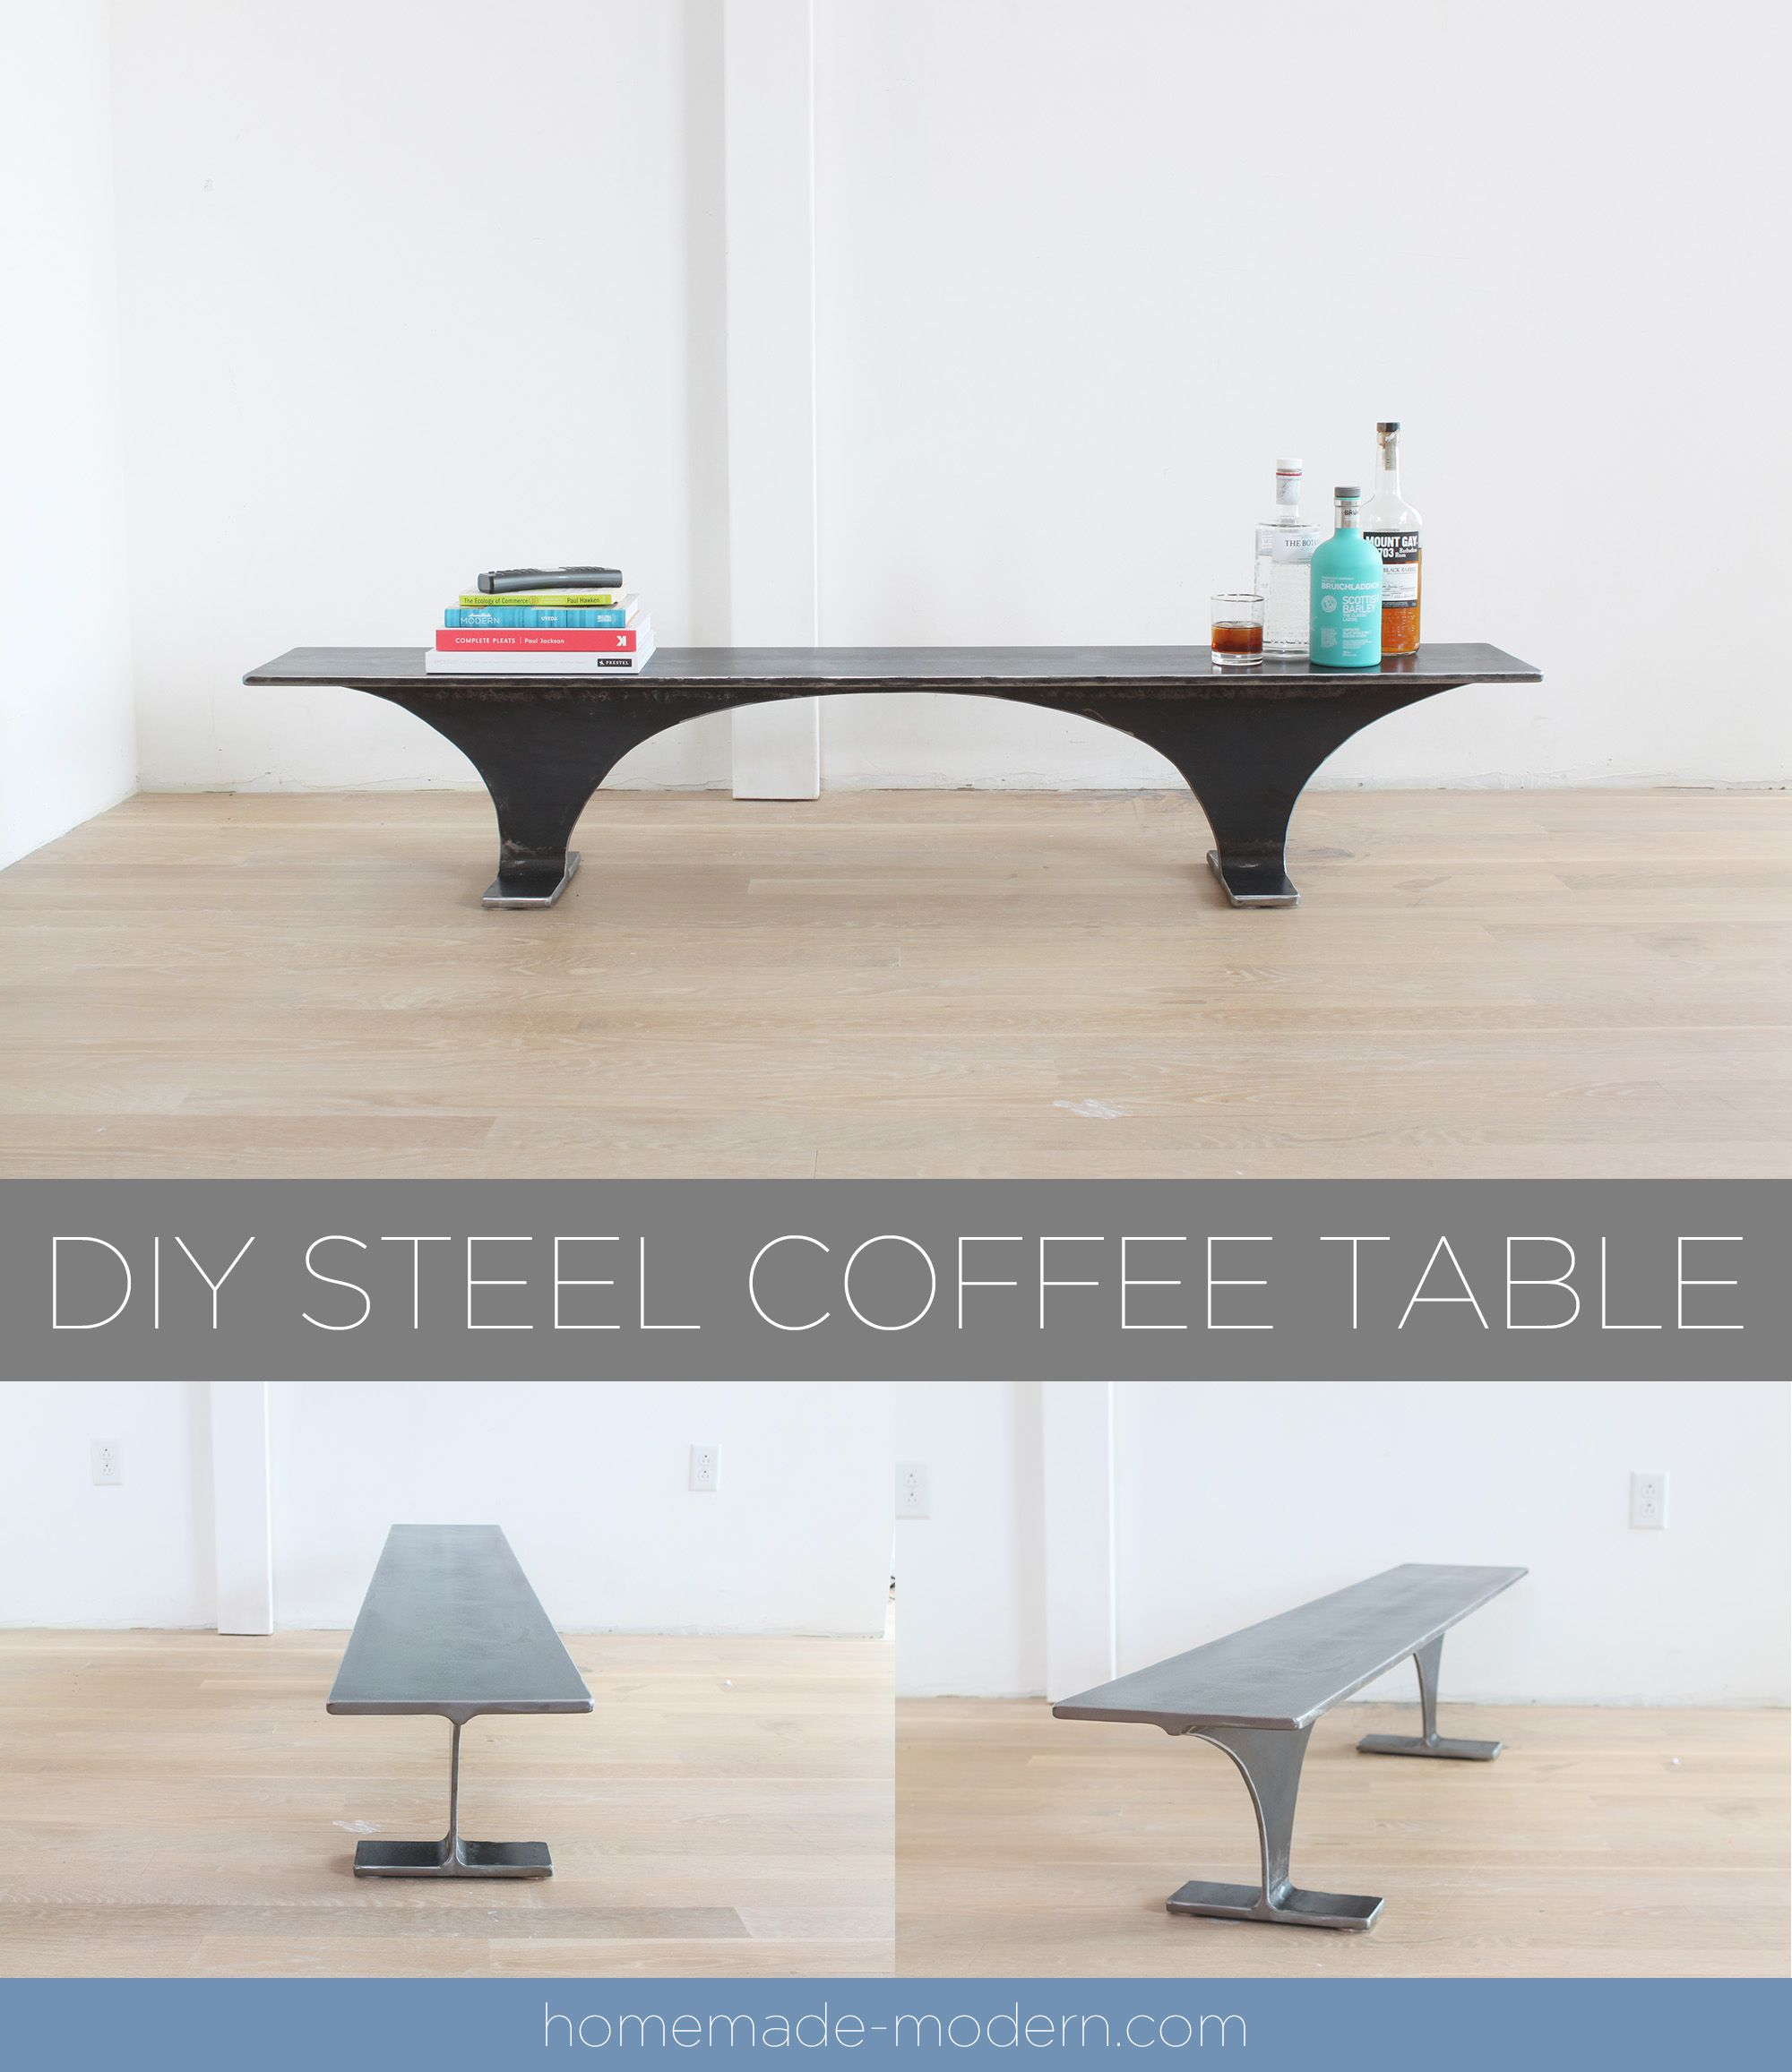 This Steel Coffee Table Or Bench Was Carved From A Single Piece Of I Beam And Was Designed By Ben Uyeda For More Information On This Project Go To Homemade Mod [ 2313 x 2000 Pixel ]